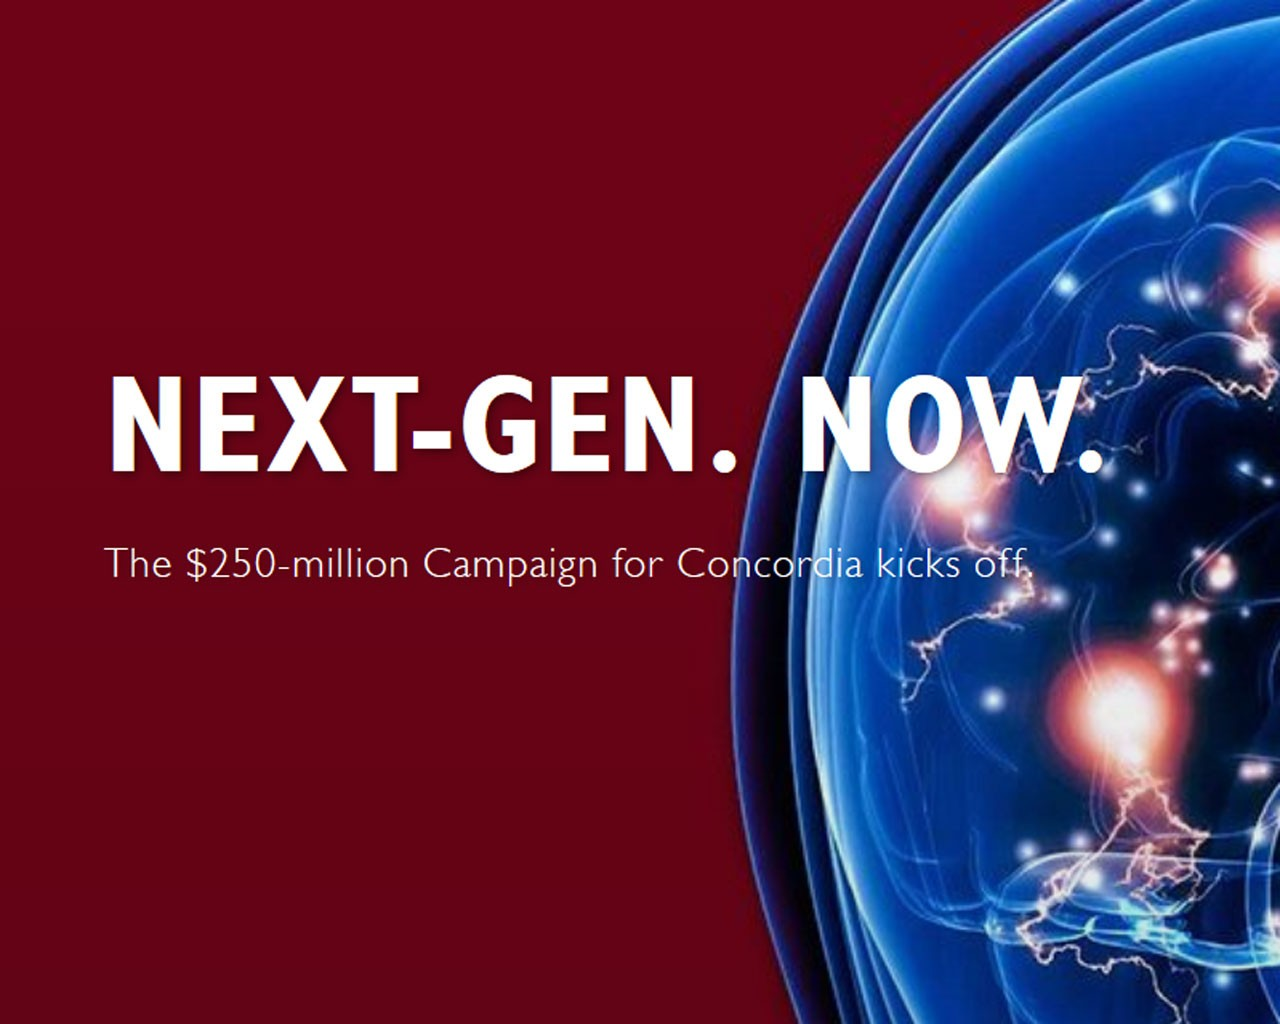 The Campaign for Concordia: Next-Gen. Now.